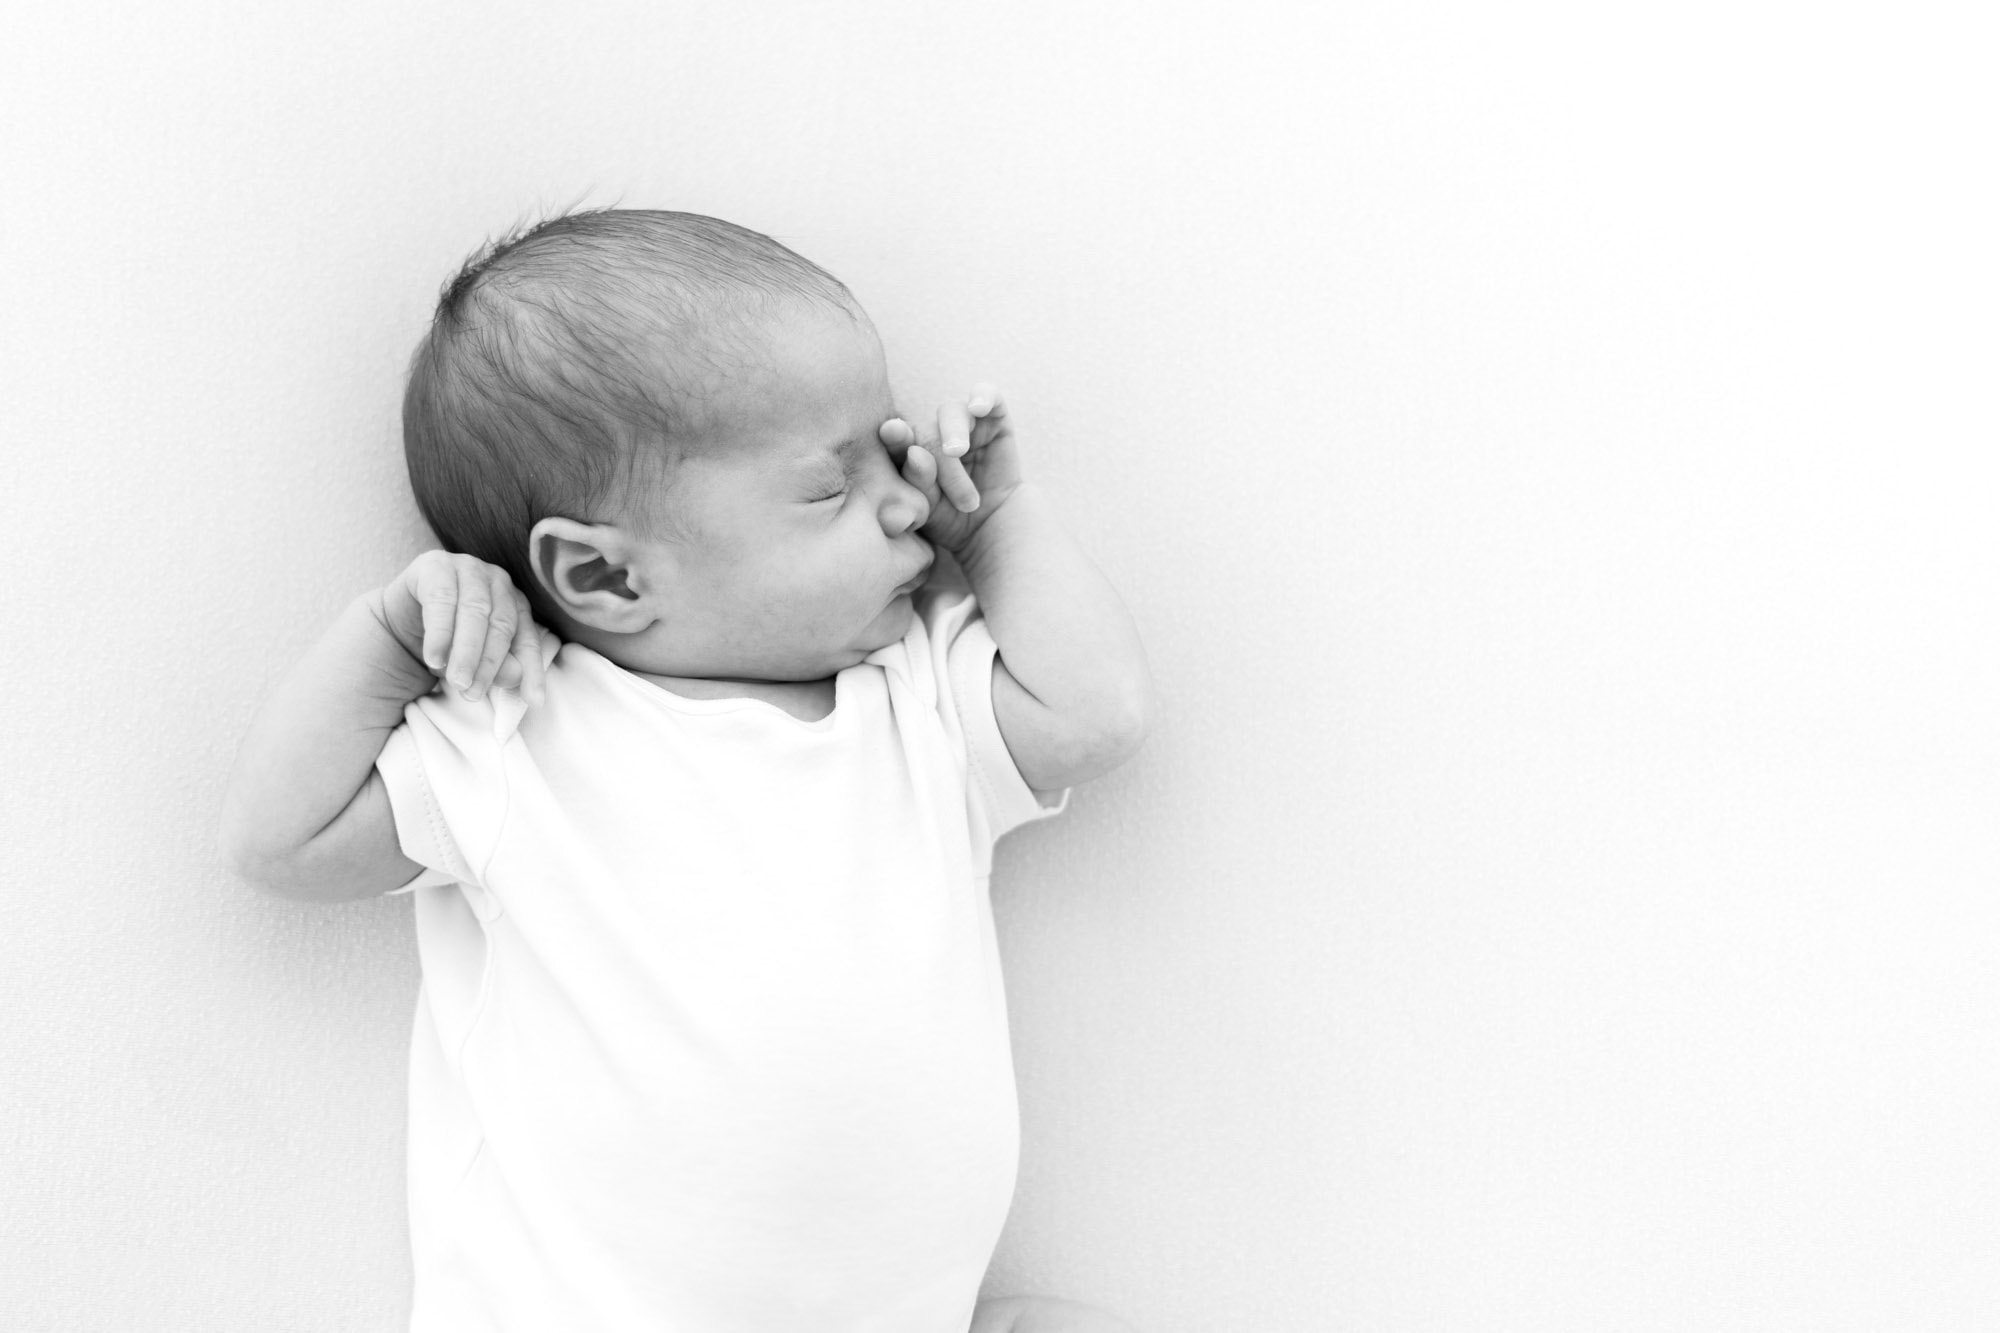 black & white image of baby stretching during session with norwich newborn photographer